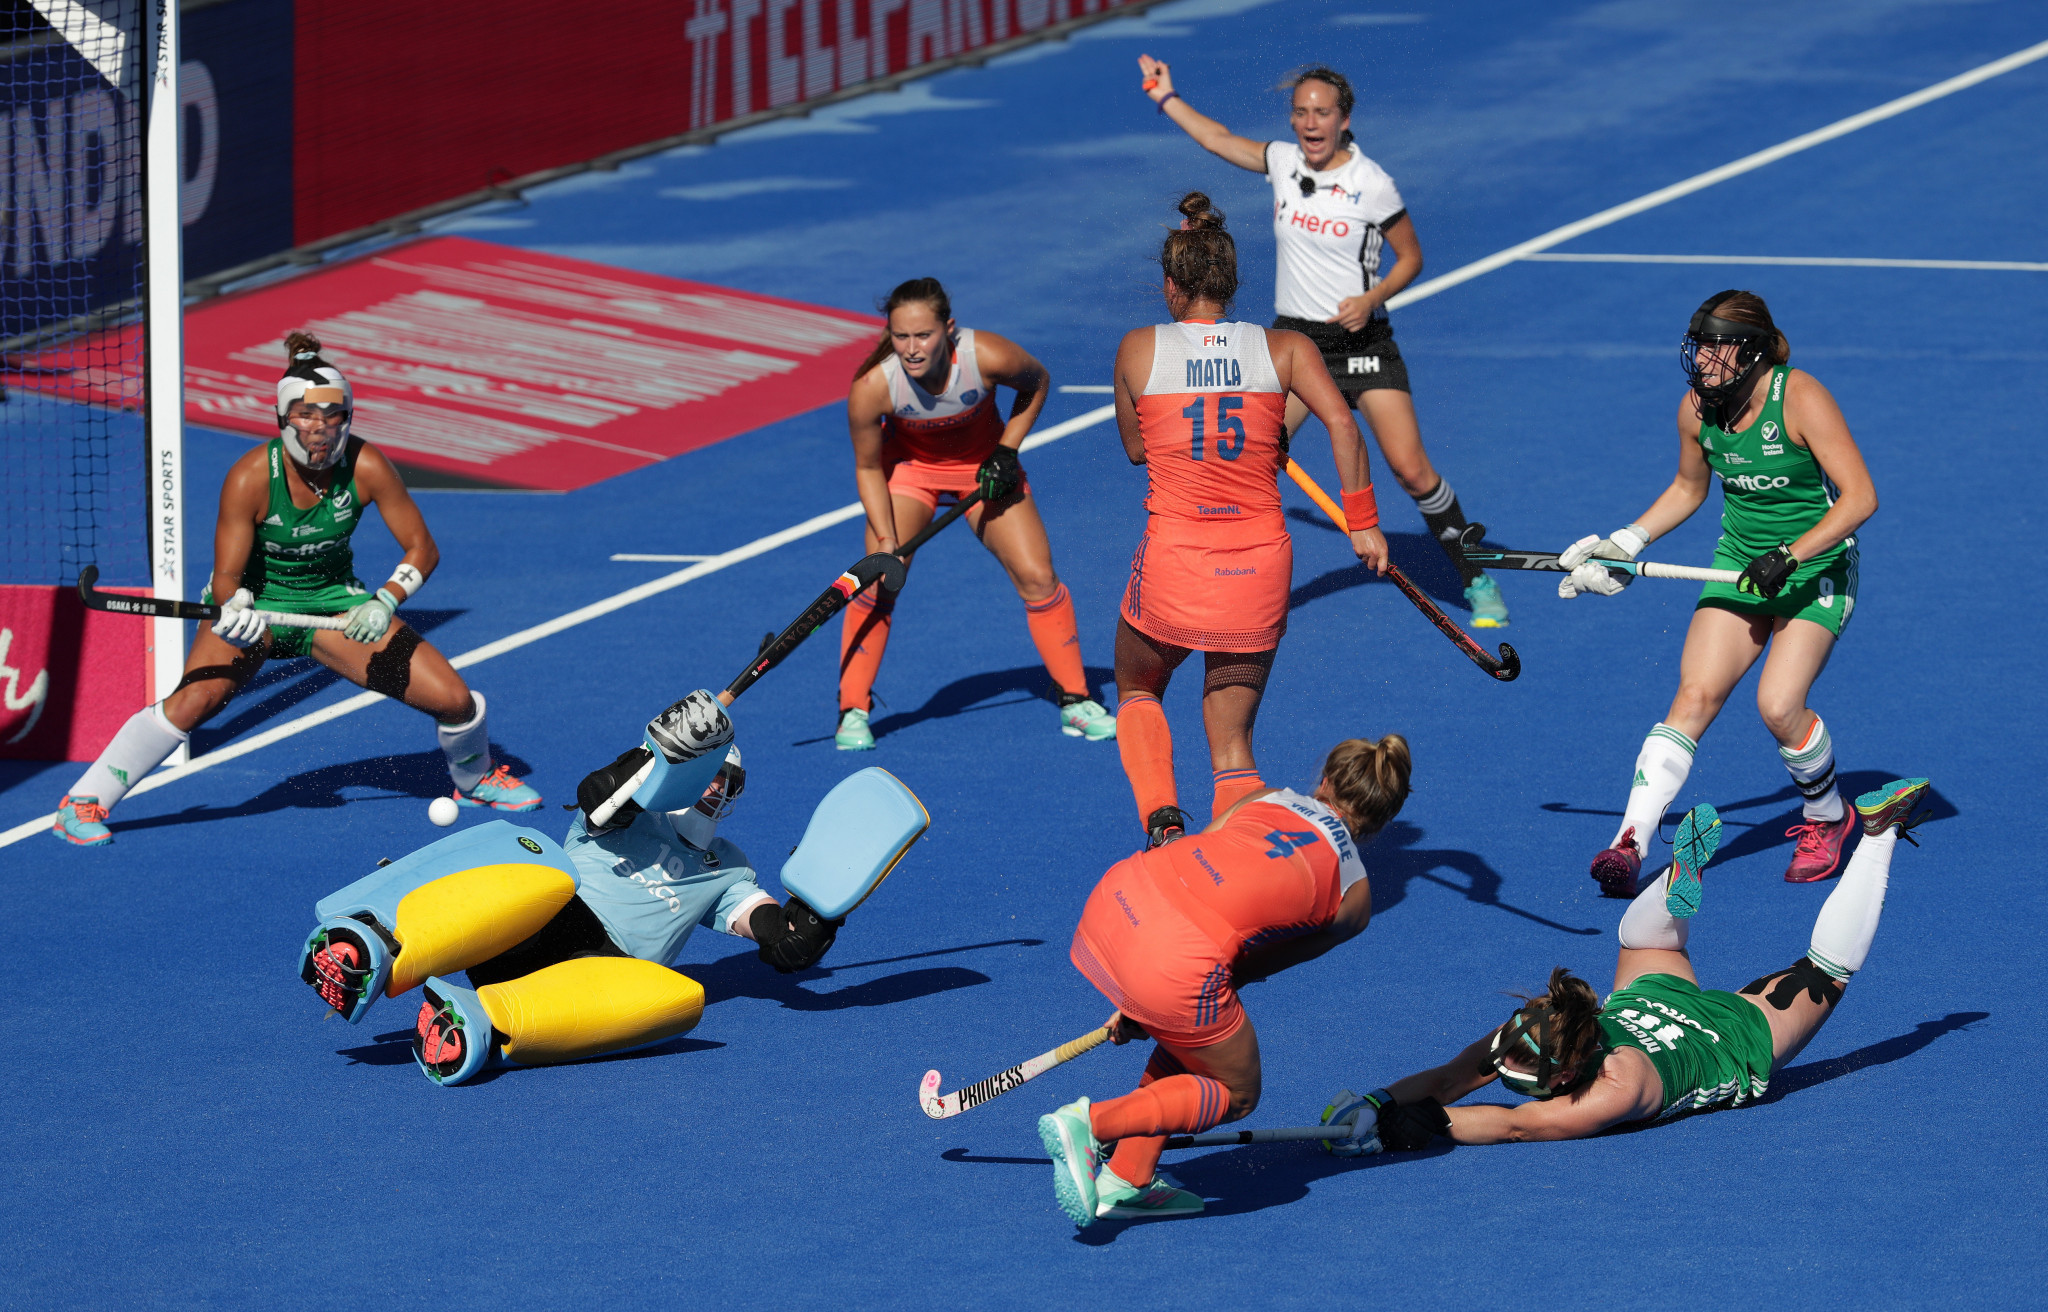 The Netherlands are the current world champions, having defeated Ireland 6-0 in the final ©Getty Images